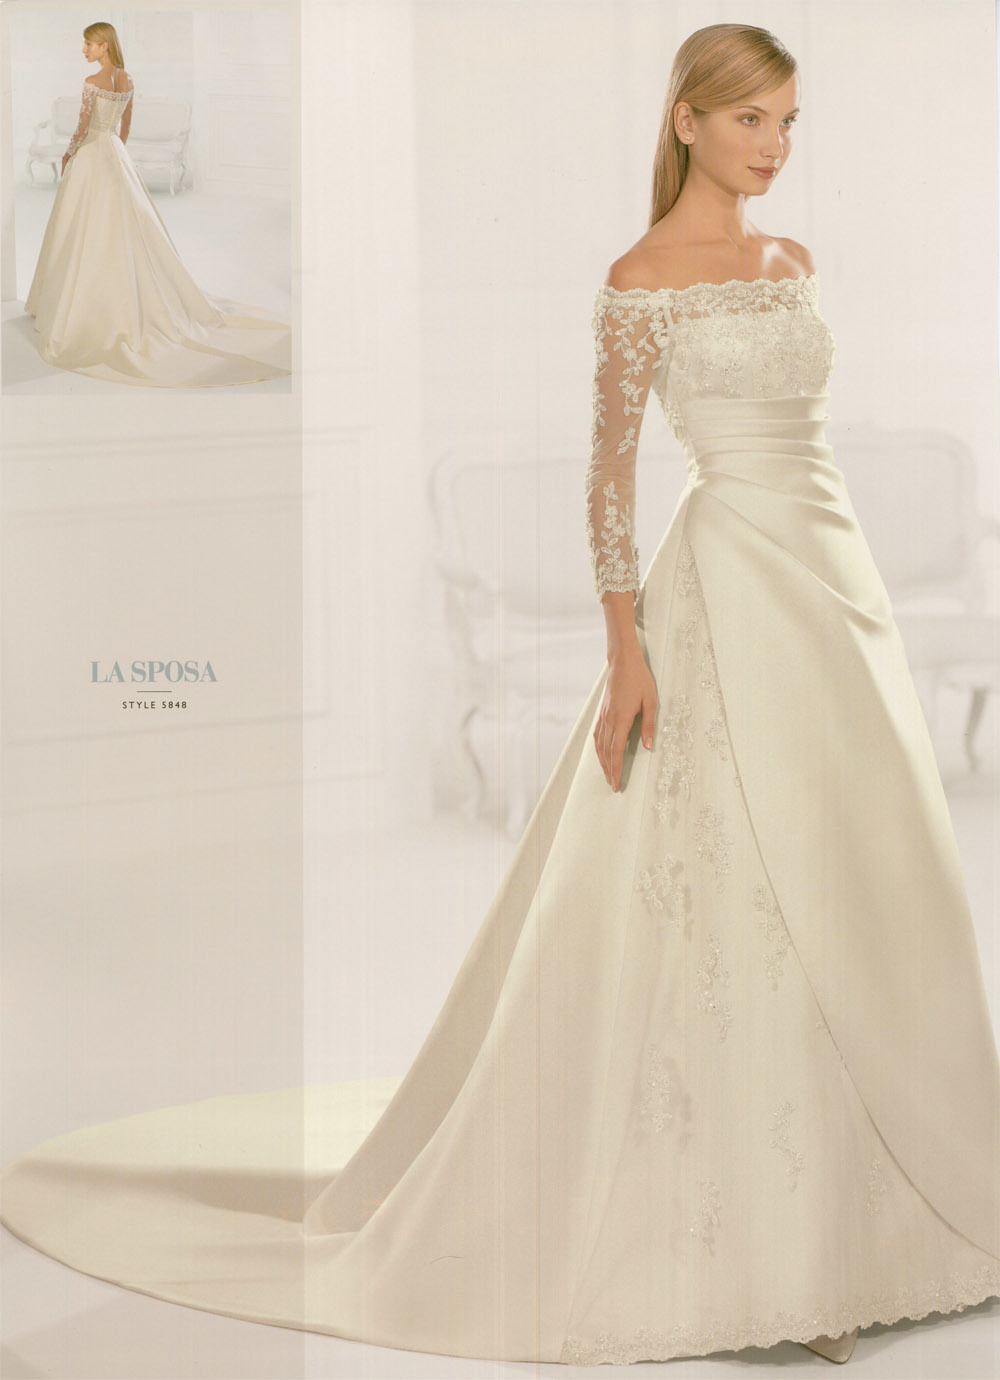 China a line wedding dress with sleeves hsa1001 china for Lace sleeve wedding dresses